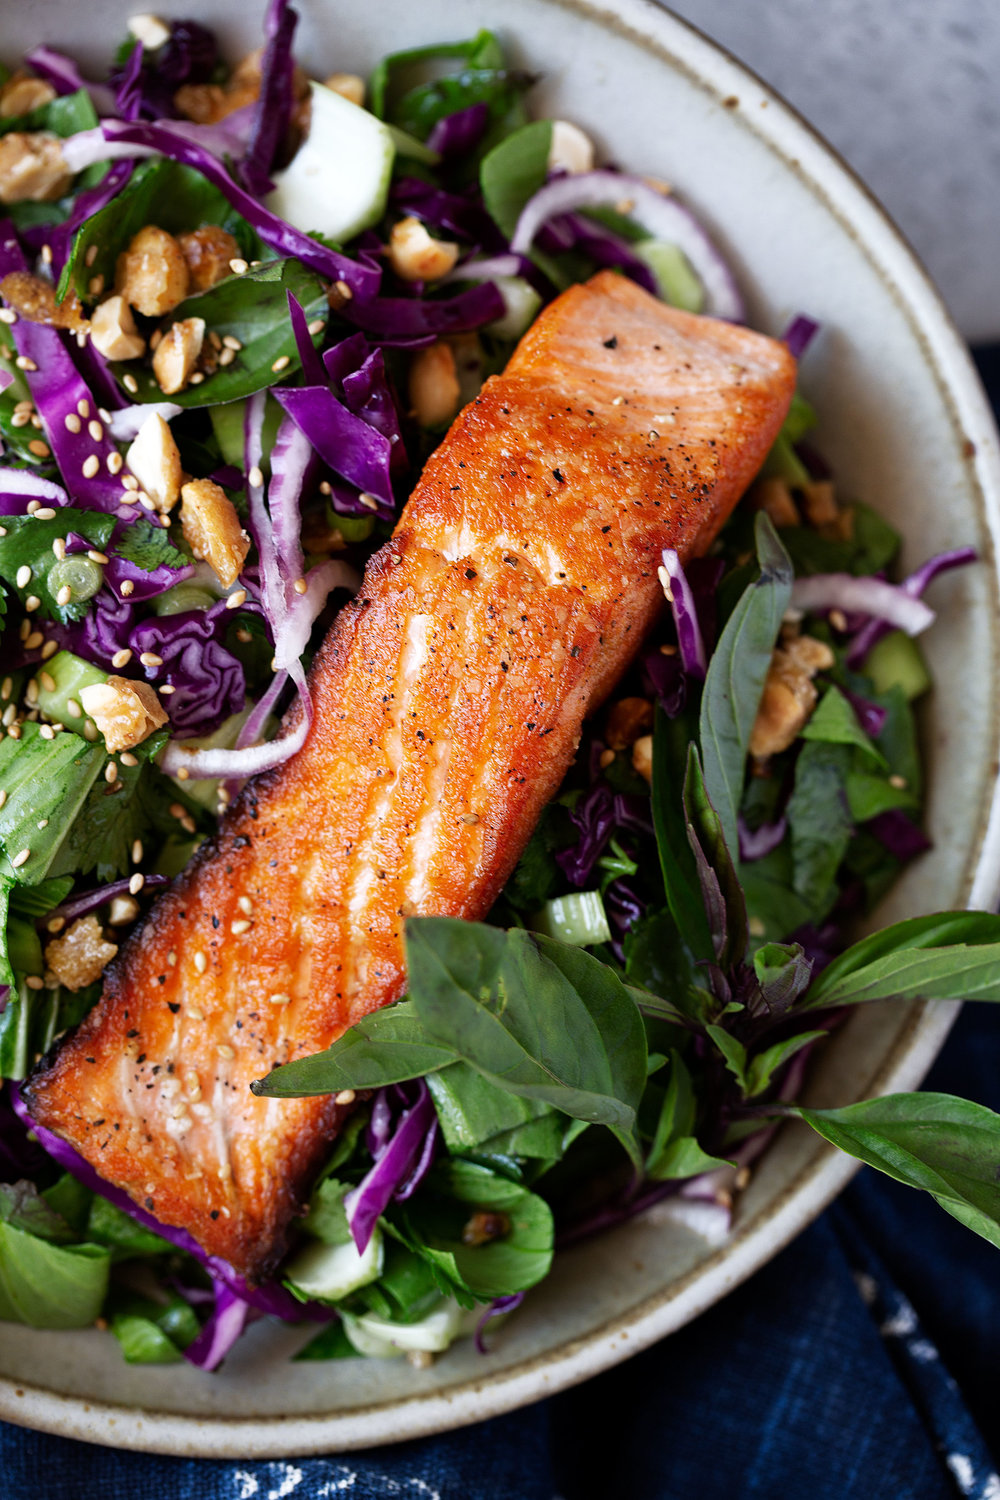 Crispy seared salmon over a base of bok choy and cabbage with a spicy, funky Thai dressing and topped with candied peanuts.